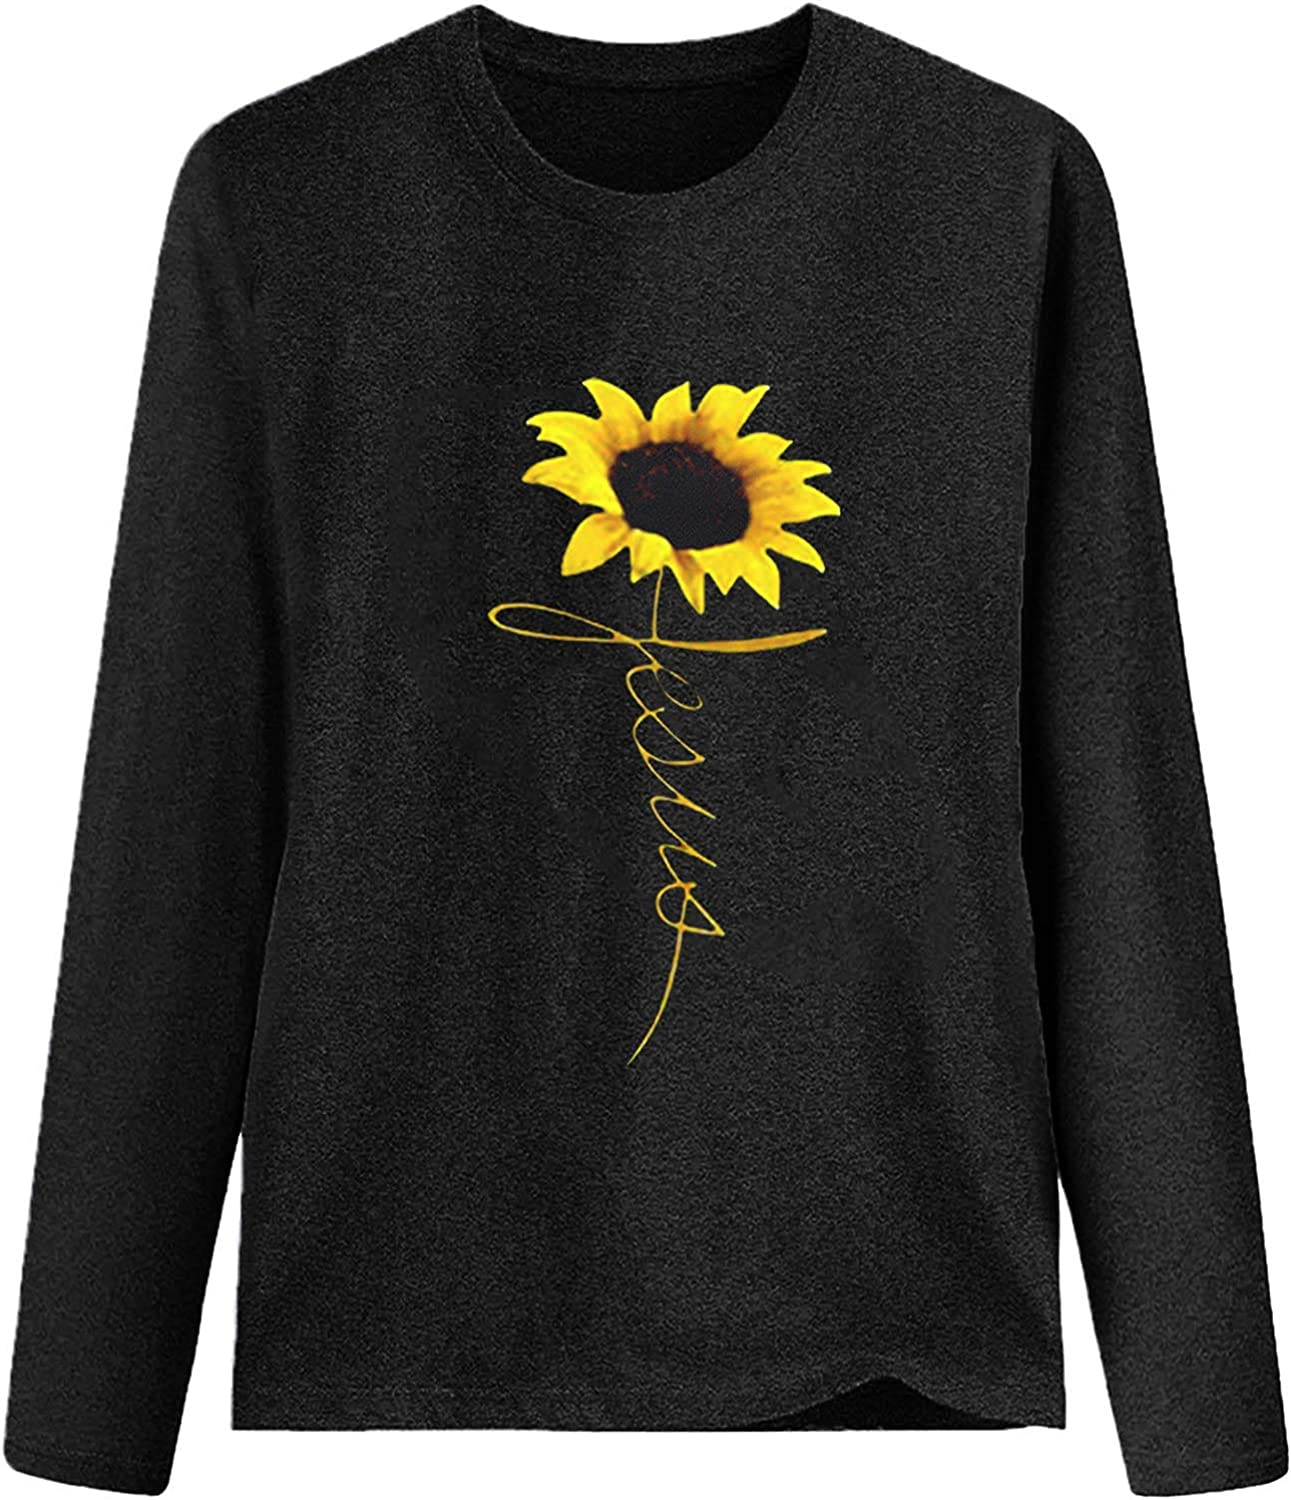 Women's Casual Long Sleeve T-Shirts Comfy Daisy Print Tops Loose Round Neck Flowy Tunics Comfy Breathable Blouses